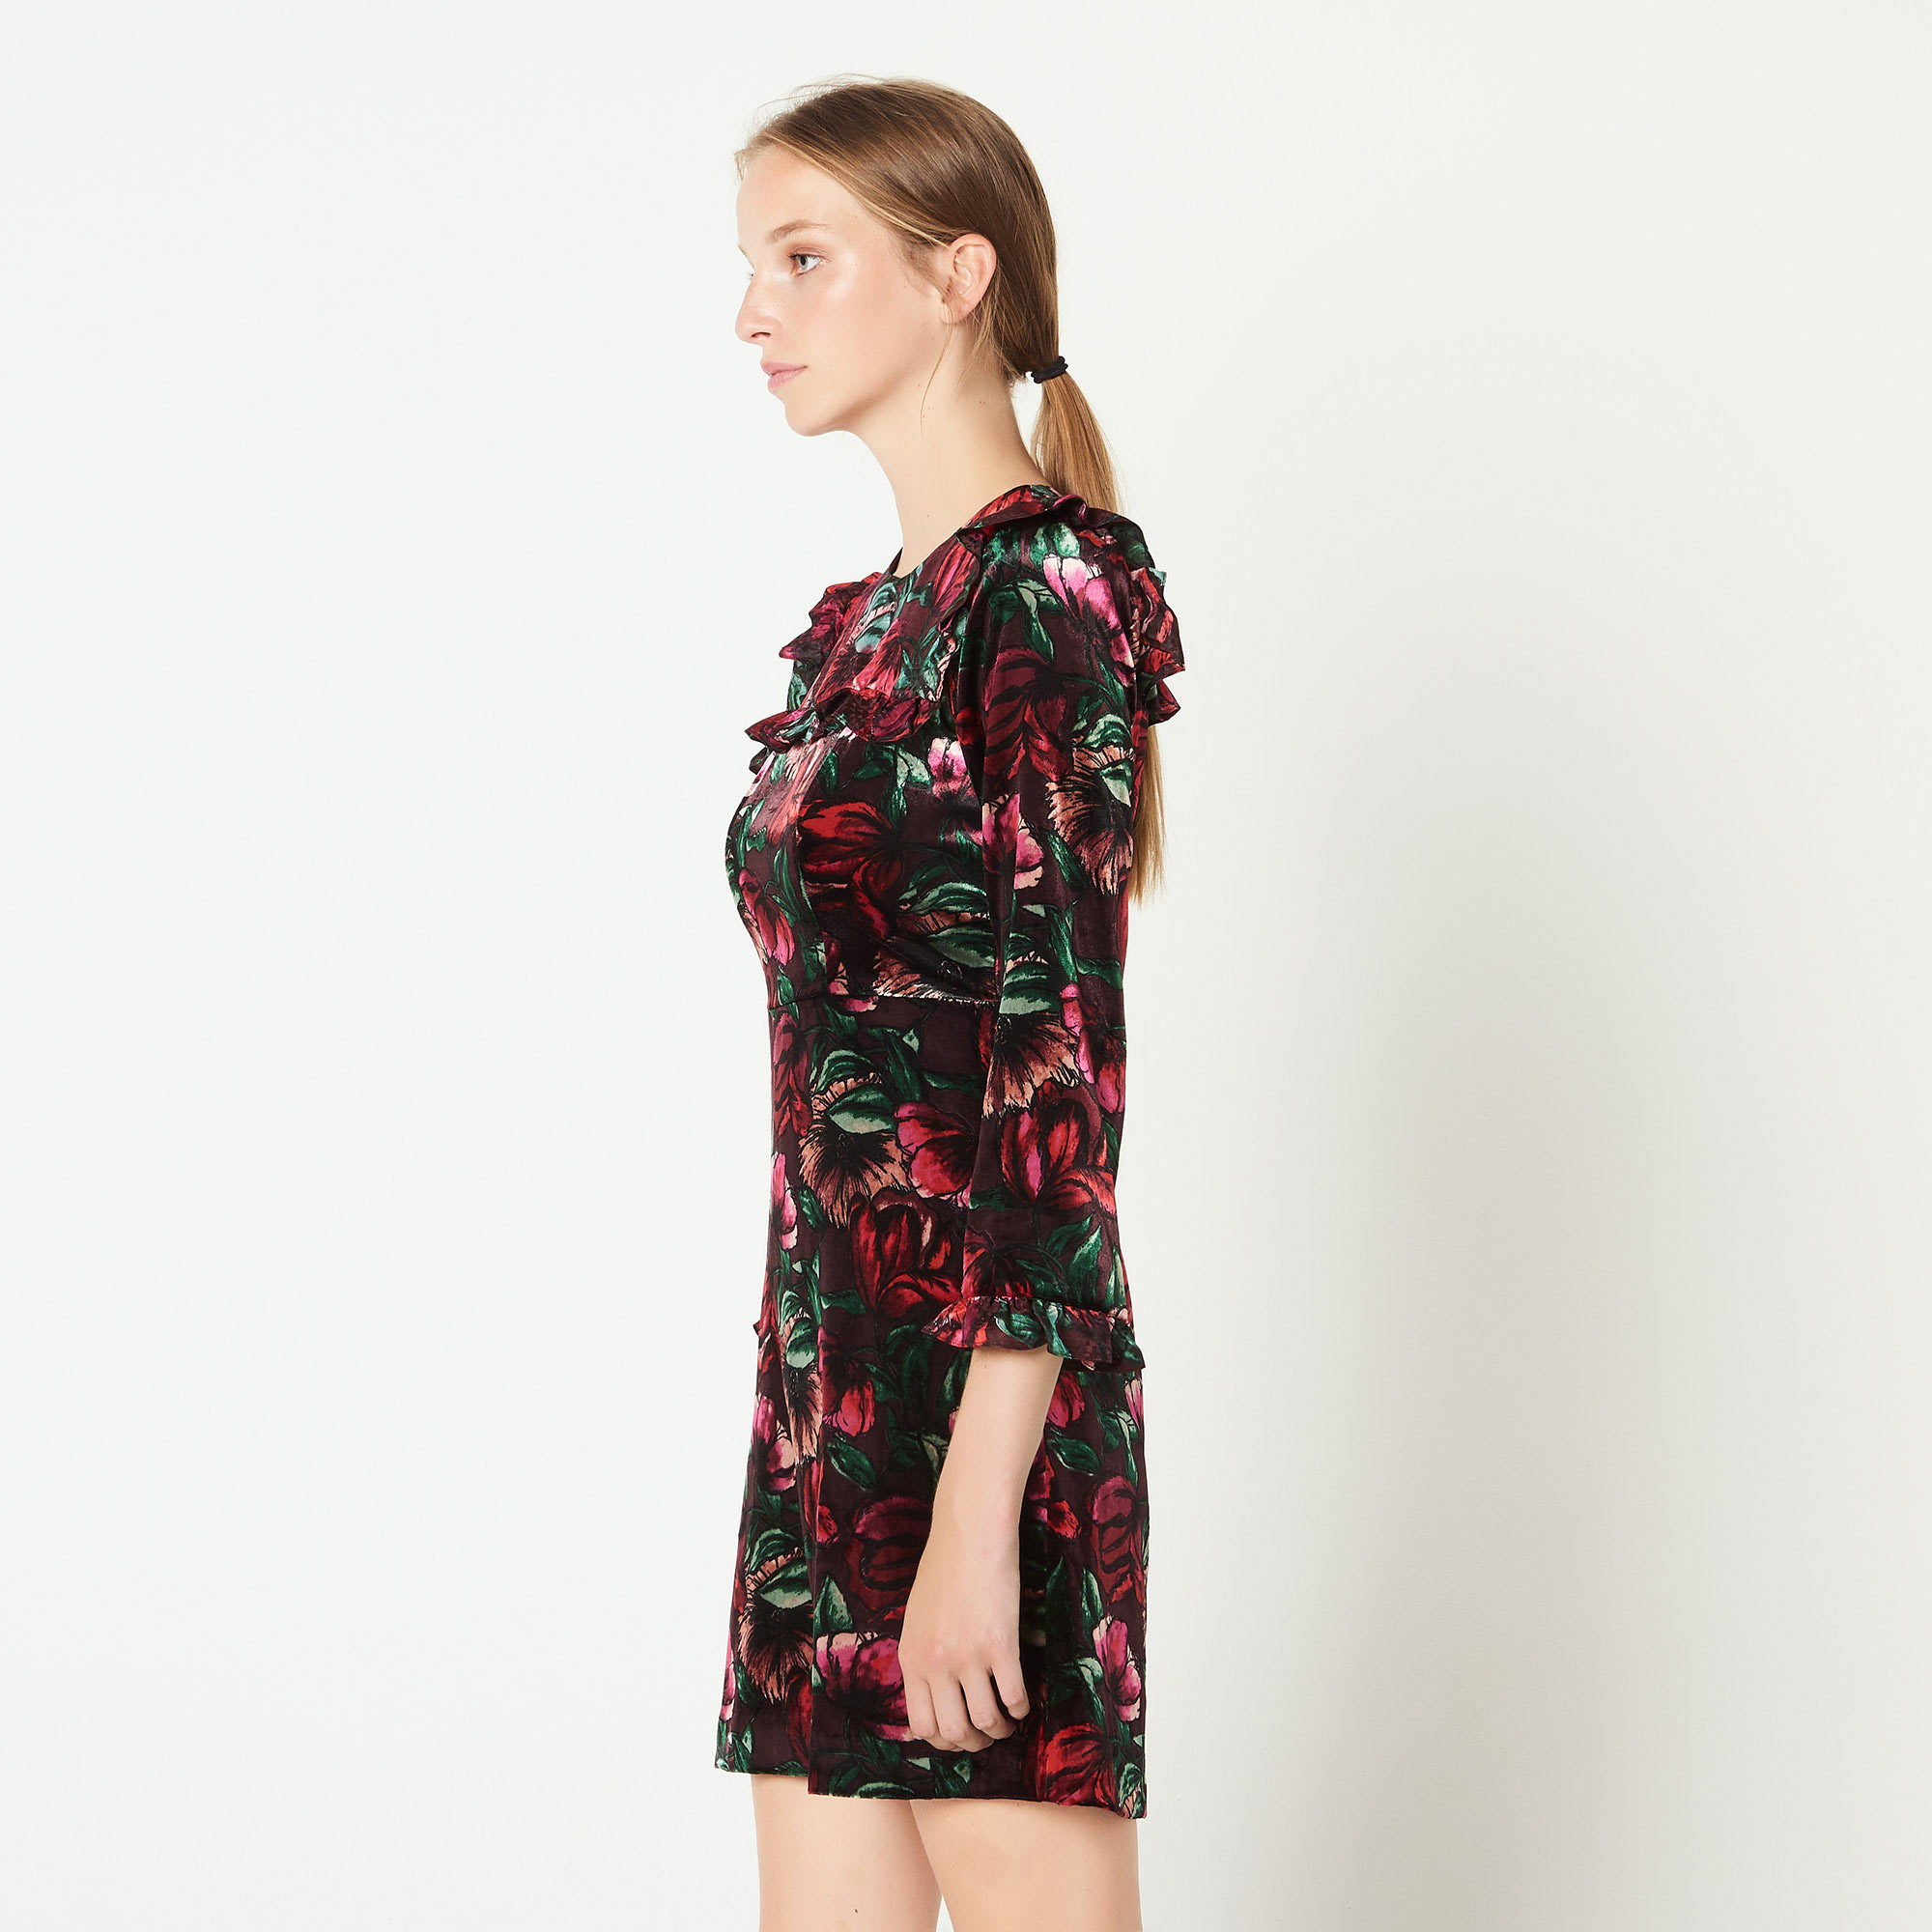 Printed dress with ruffles - Bordeaux